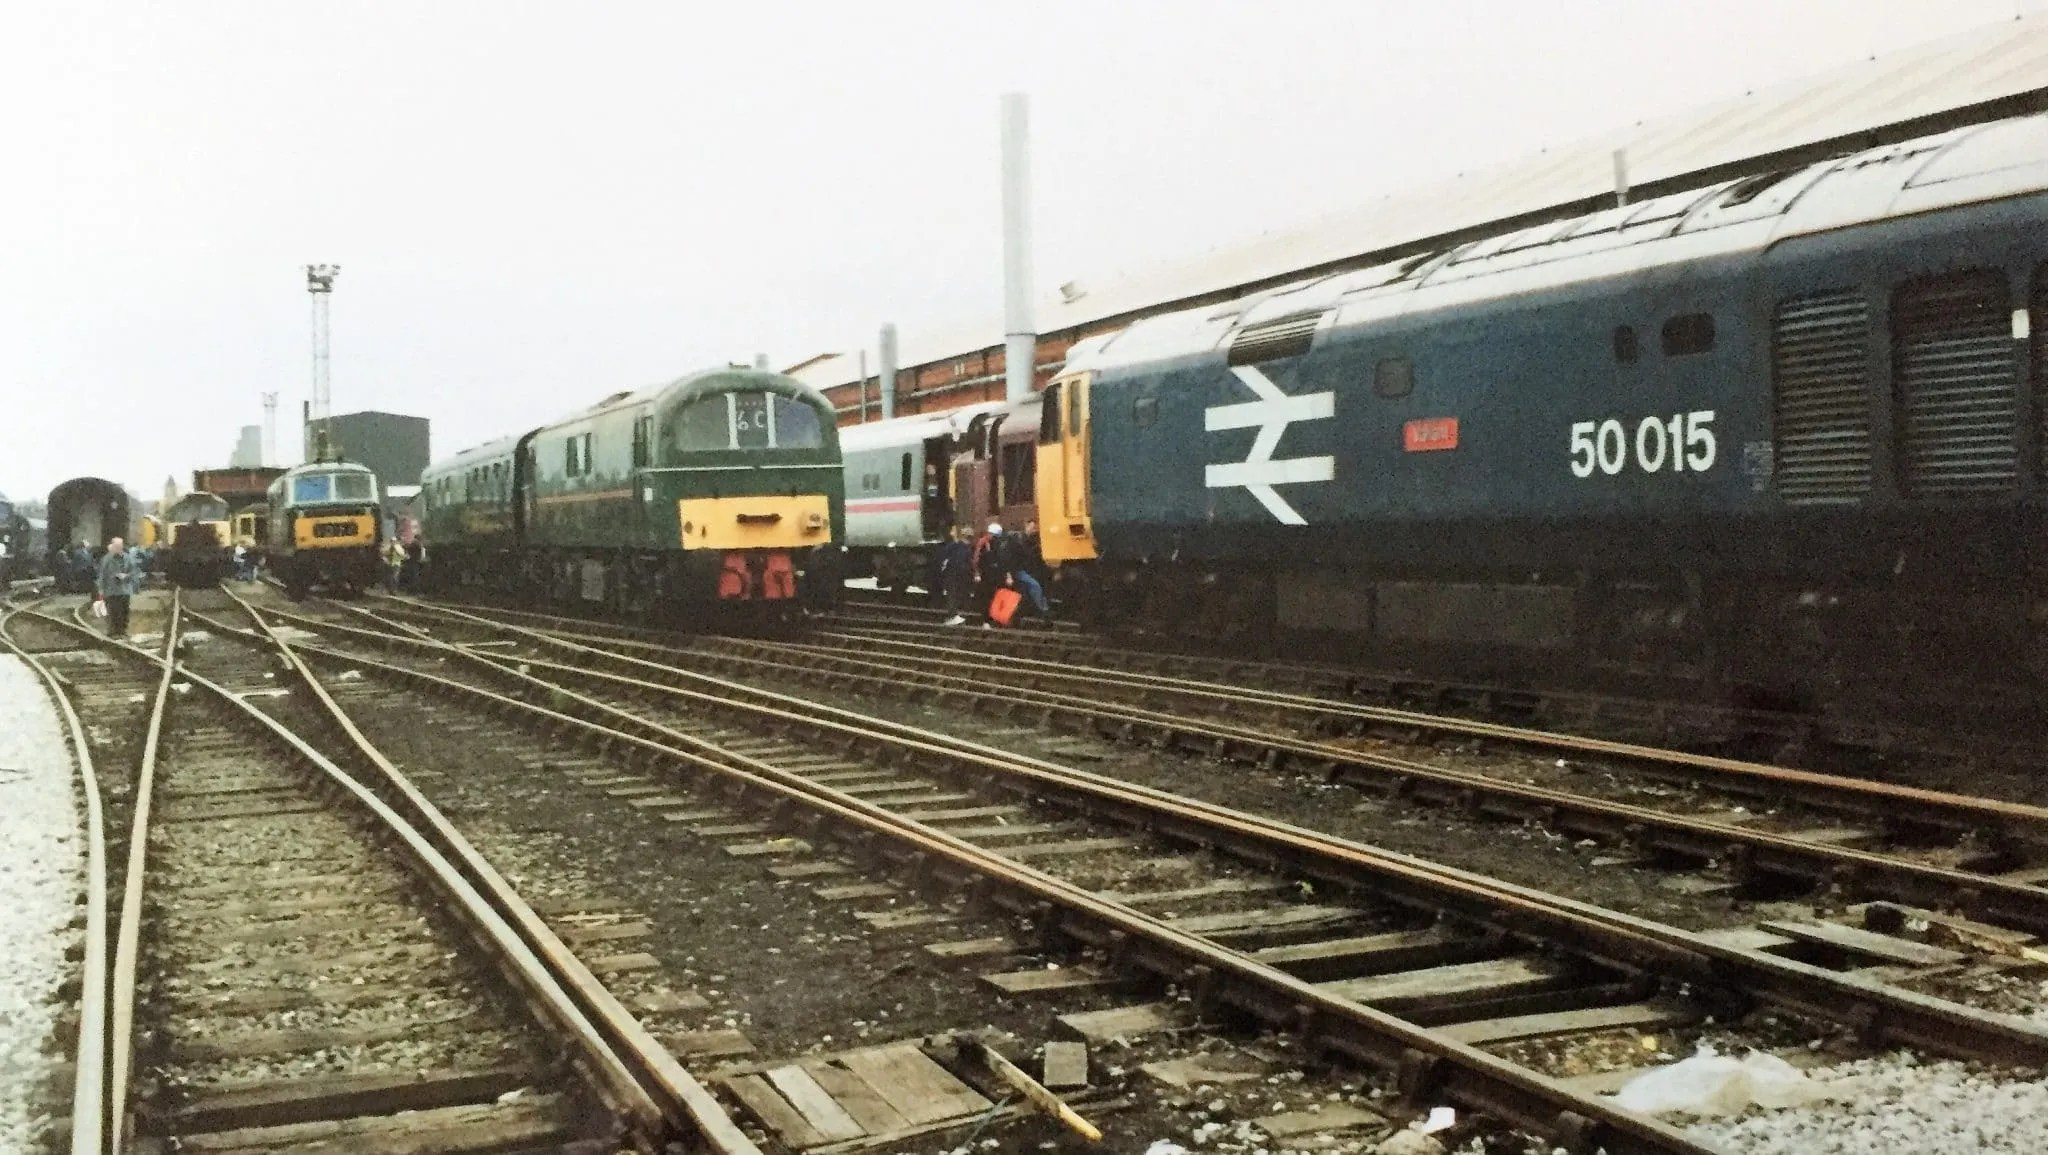 Crewe works memories - locomotives outside the traction shop